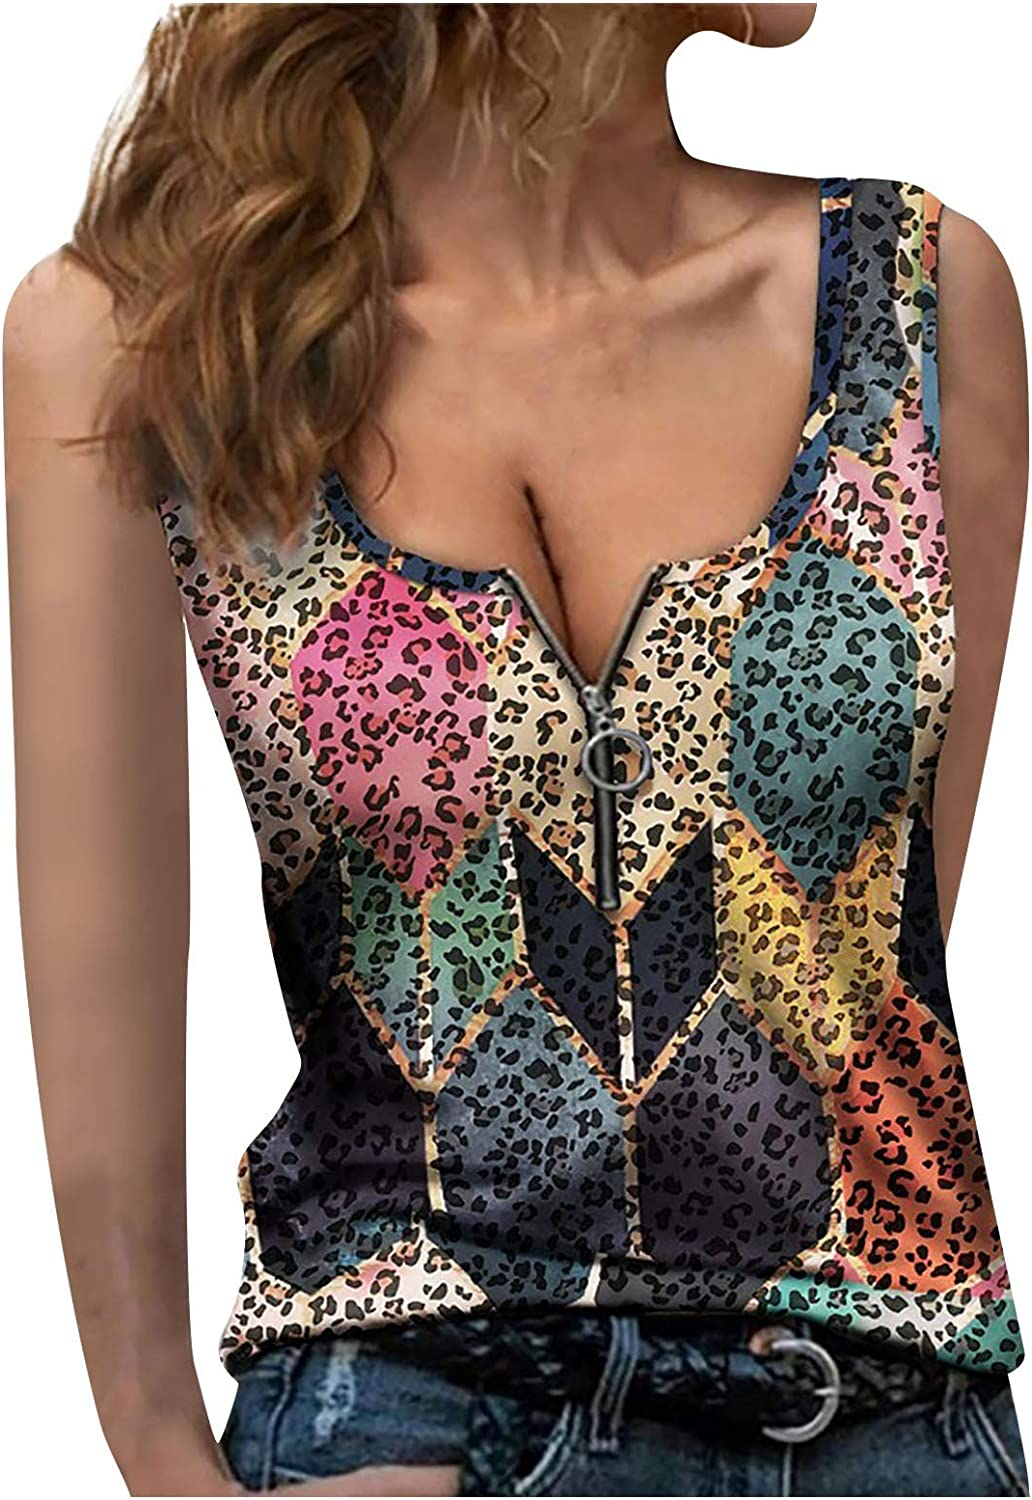 Tops for Women Casual Summer, Women Printed Zipper Stitched Leopard Sleeveless Vest Fashionable Tops